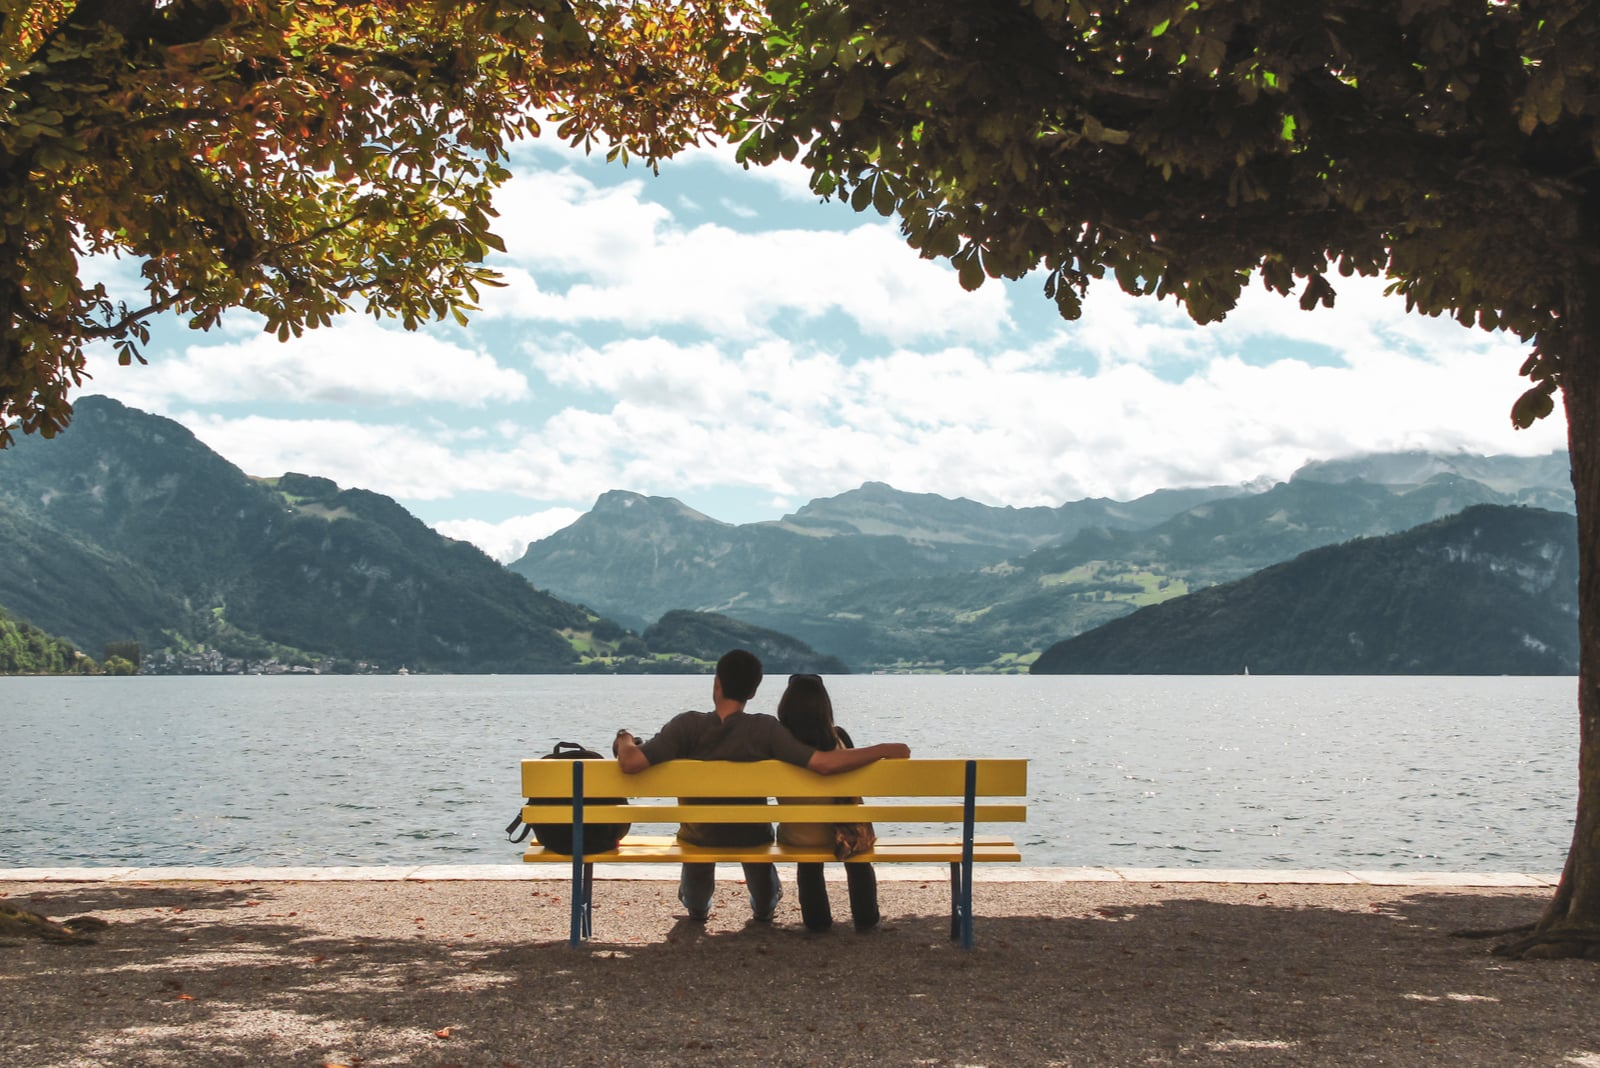 couple sitting on a bench in the shade of trees